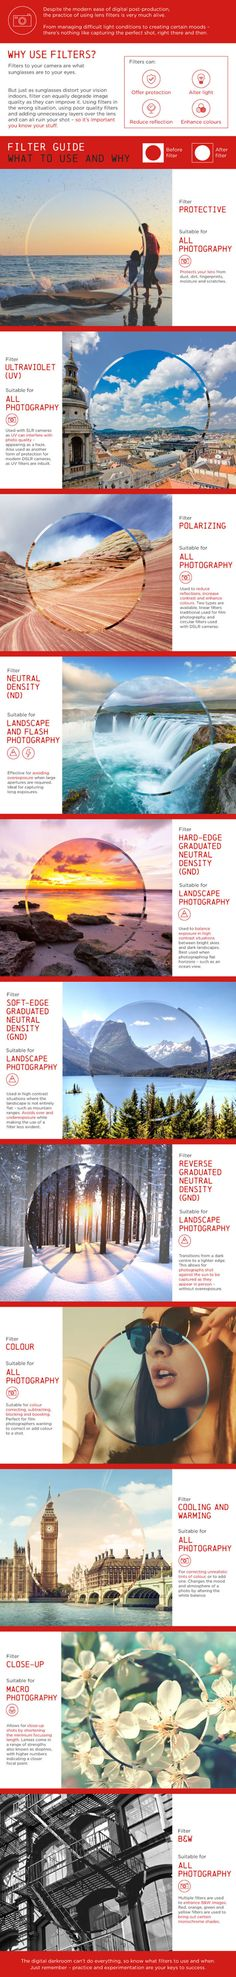 What Lens Filter To Use And Why